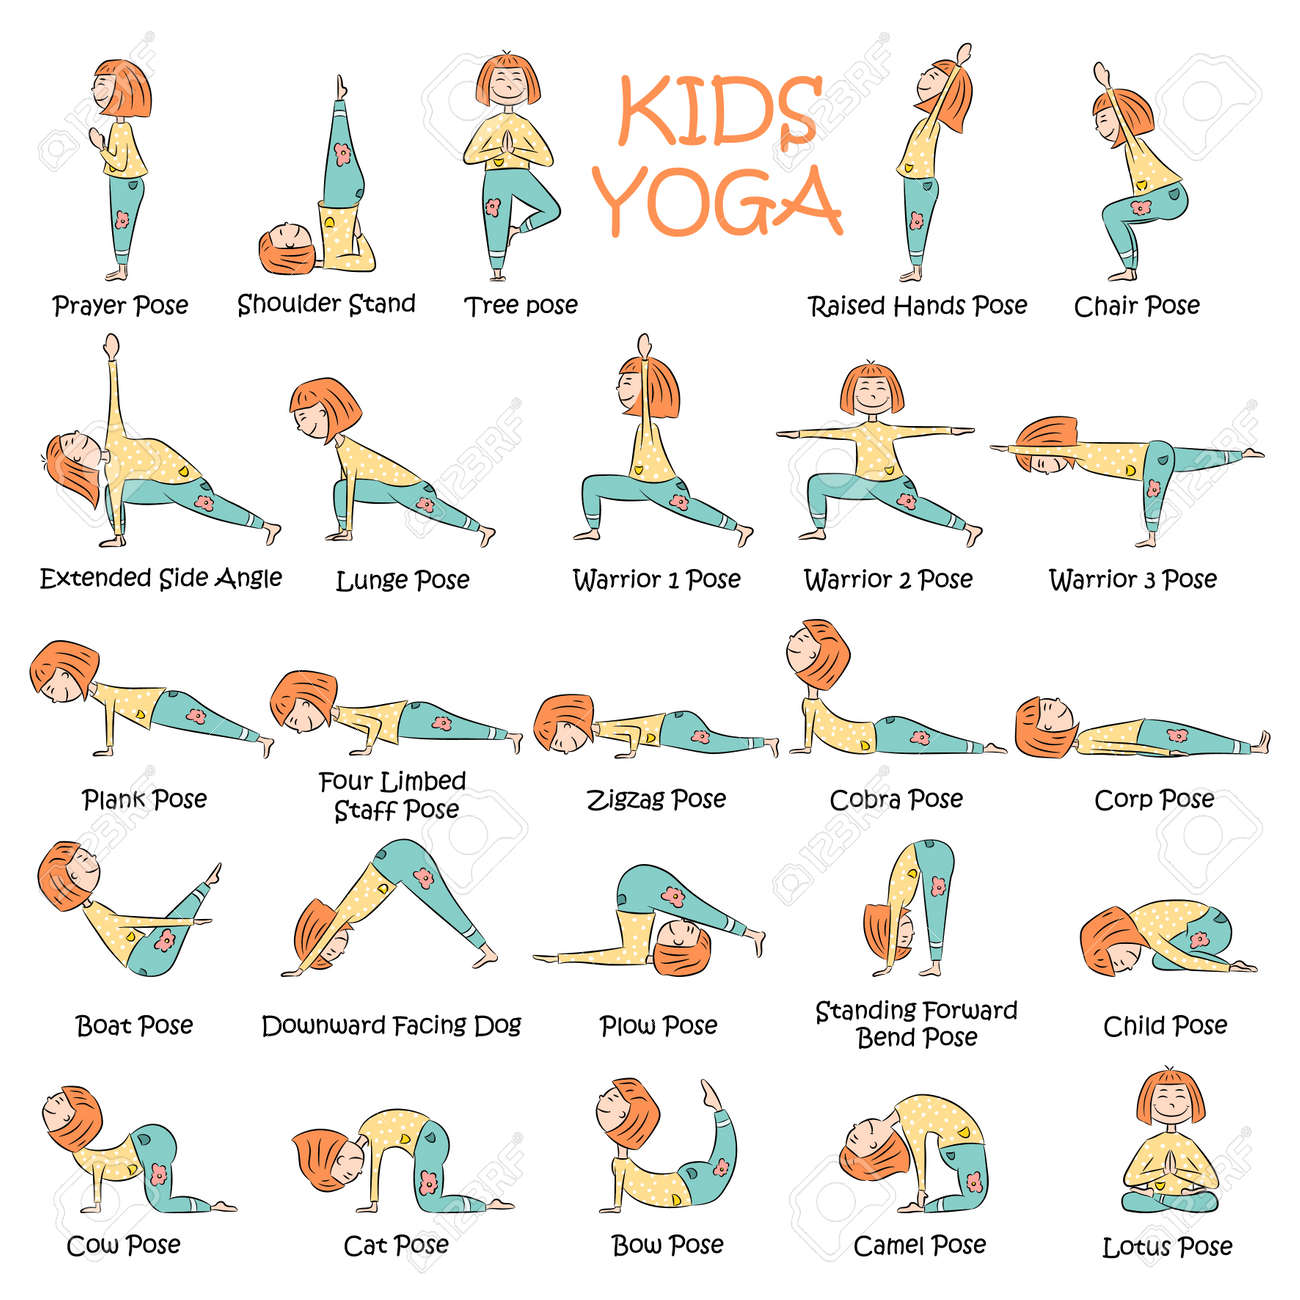 Yoga Kids Set Gymnastics For Children And Healthy Lifestyle Royalty Free Cliparts Vectors And Stock Illustration Image 108853982